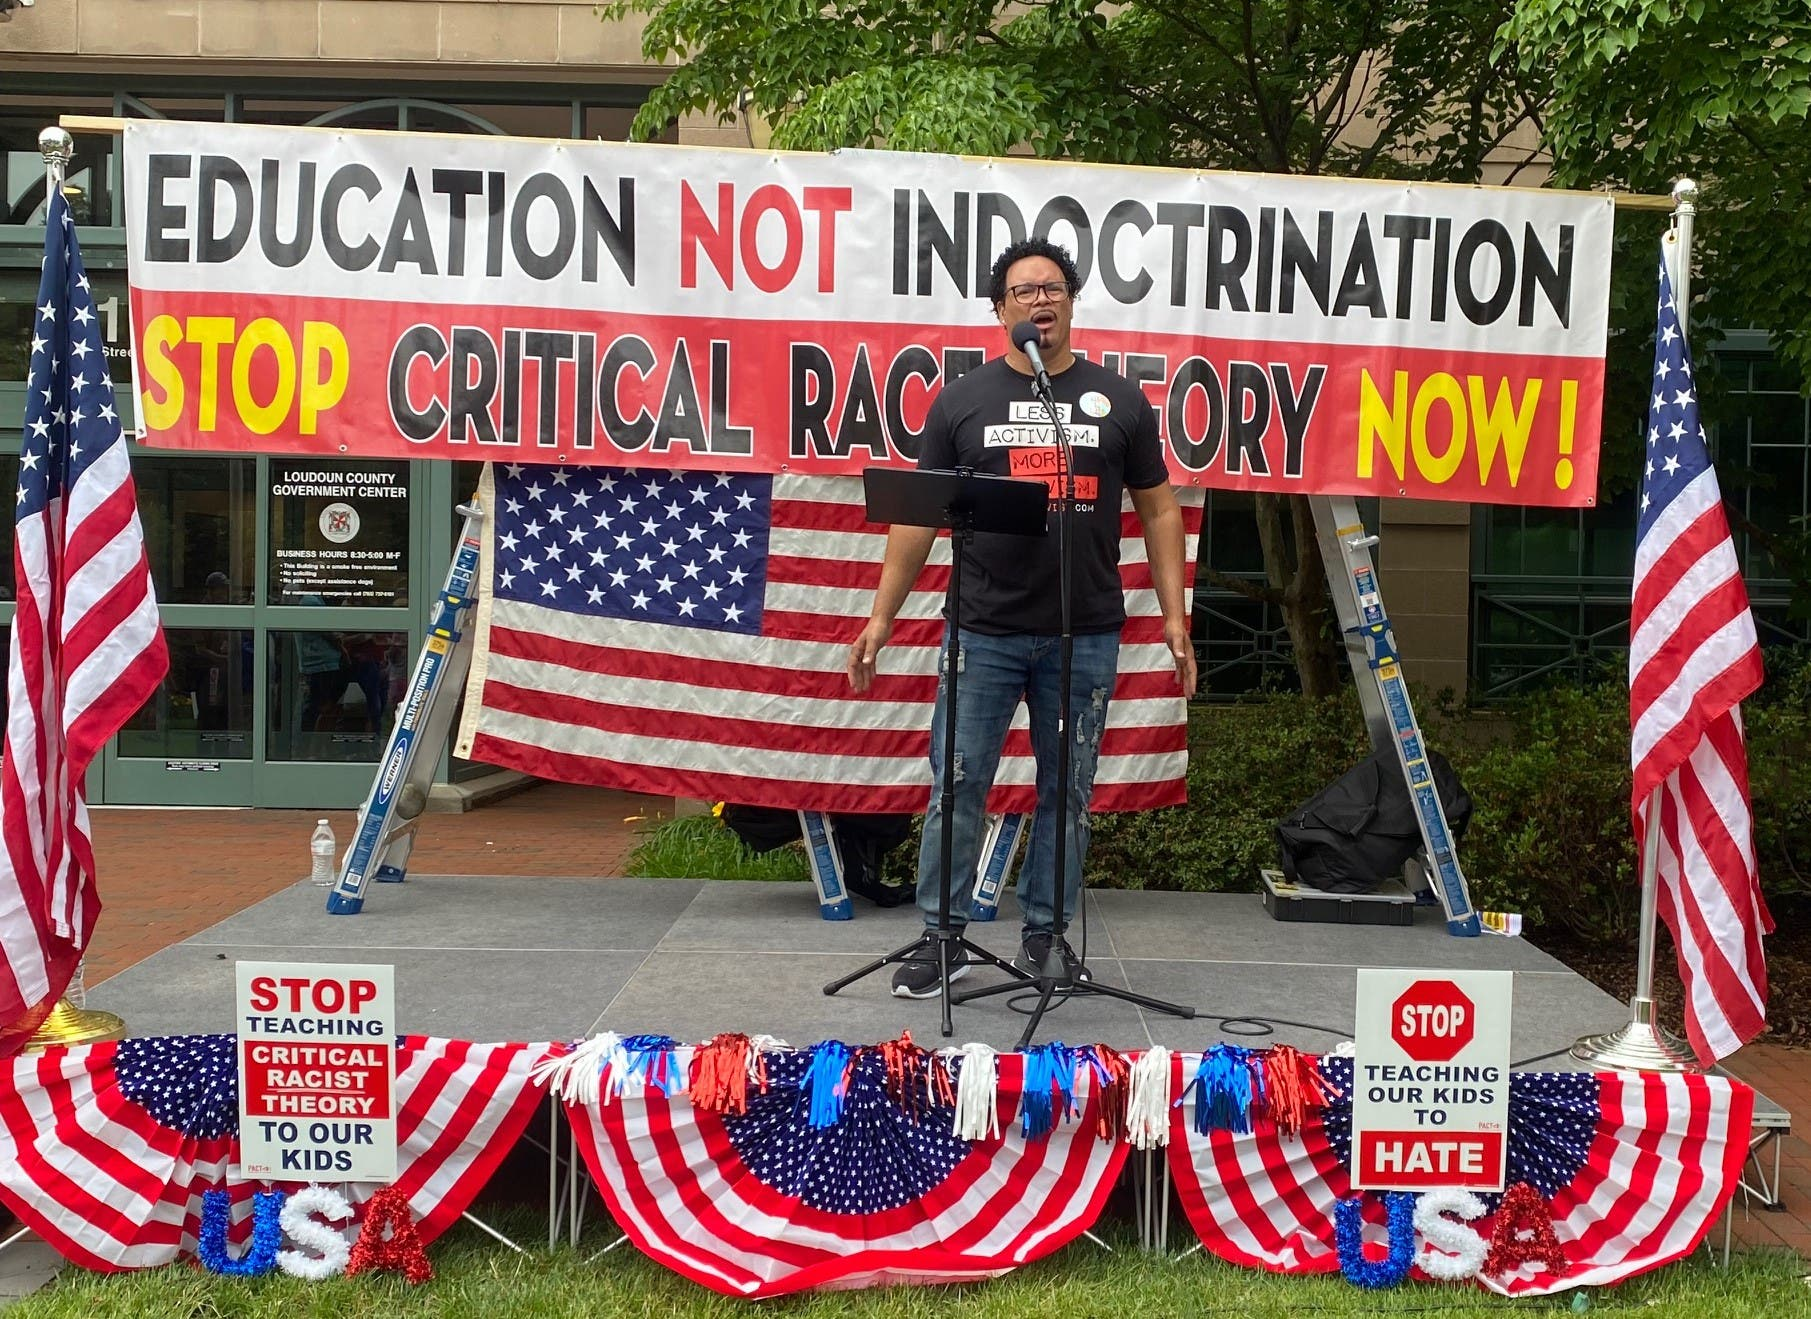 Education not Indoctrination